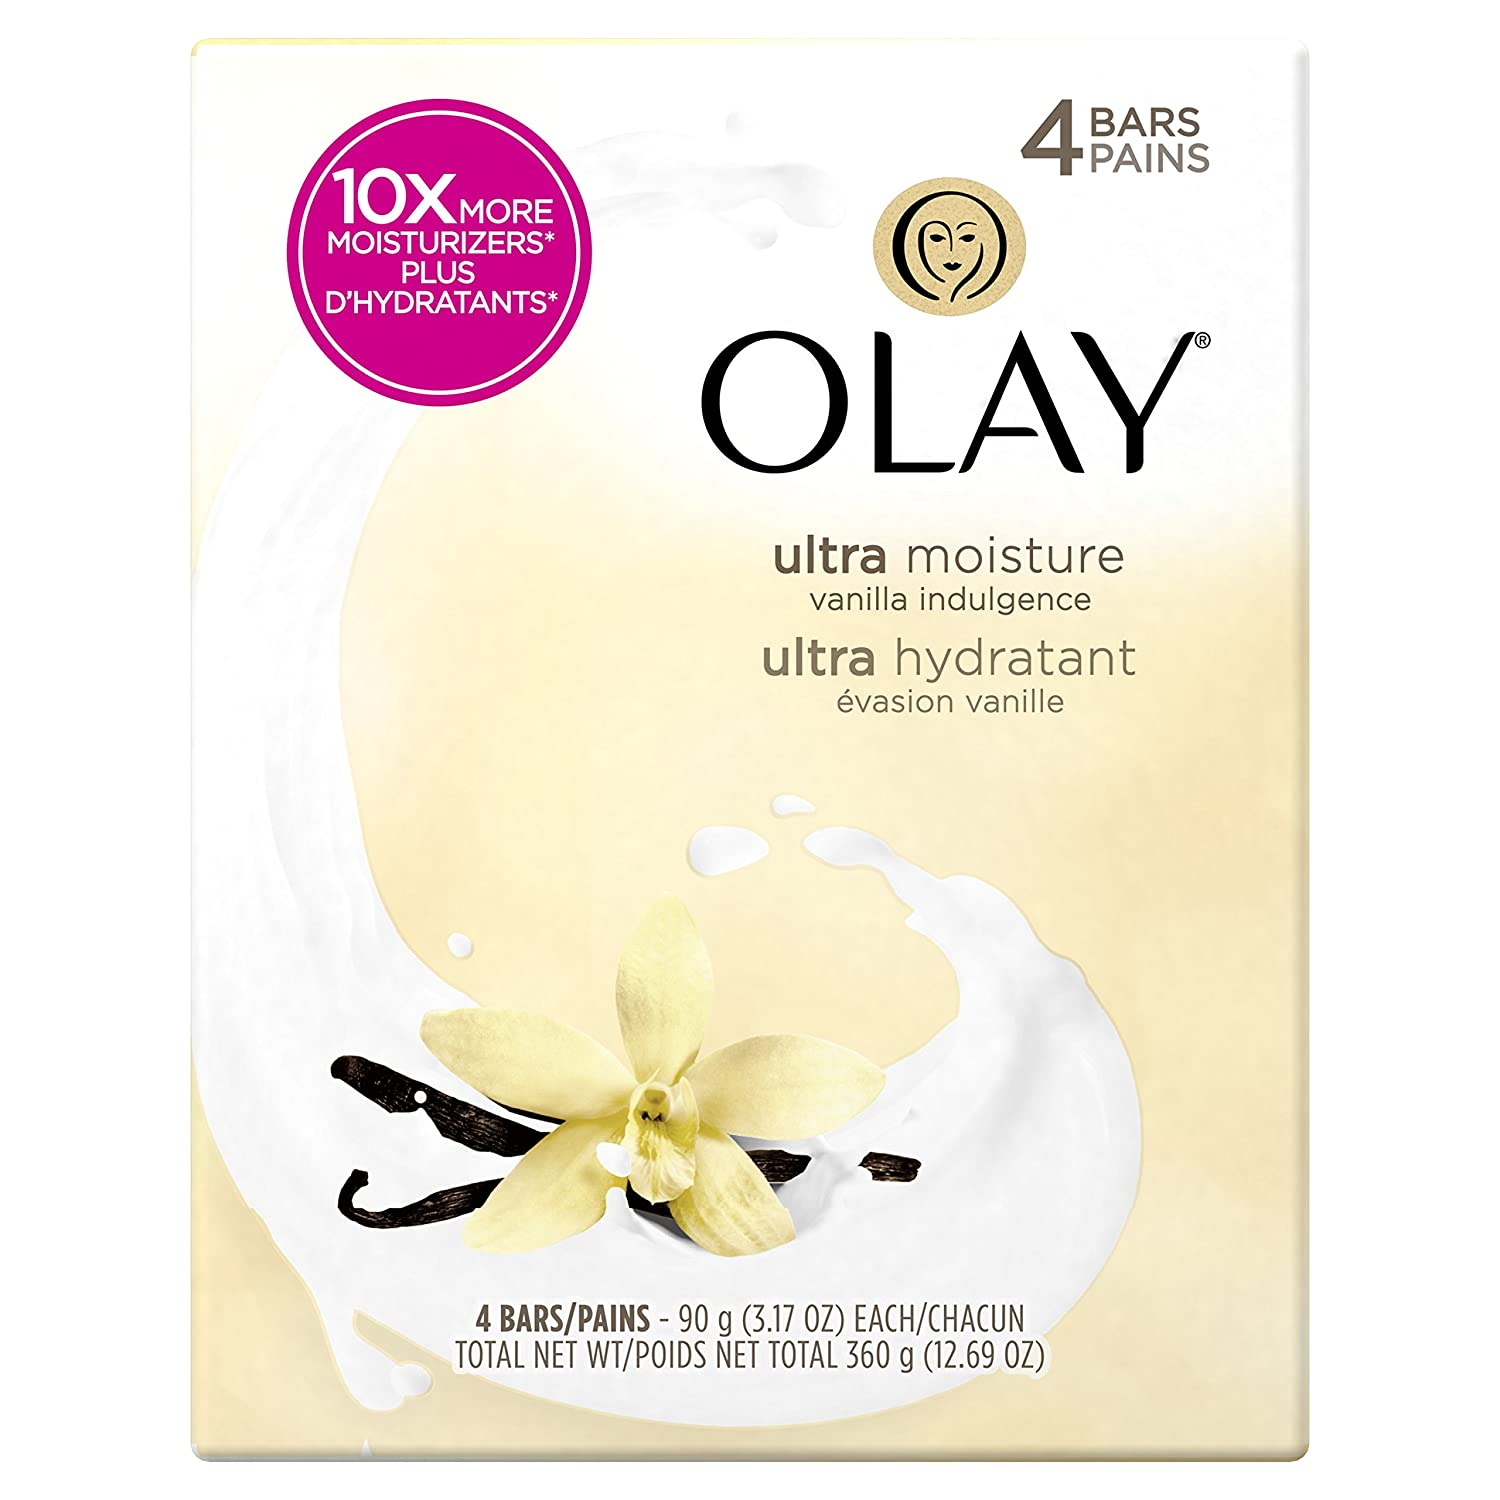 Olay Moisture Outlast Beauty Bar 90g, 4 Count Procter and Gamble